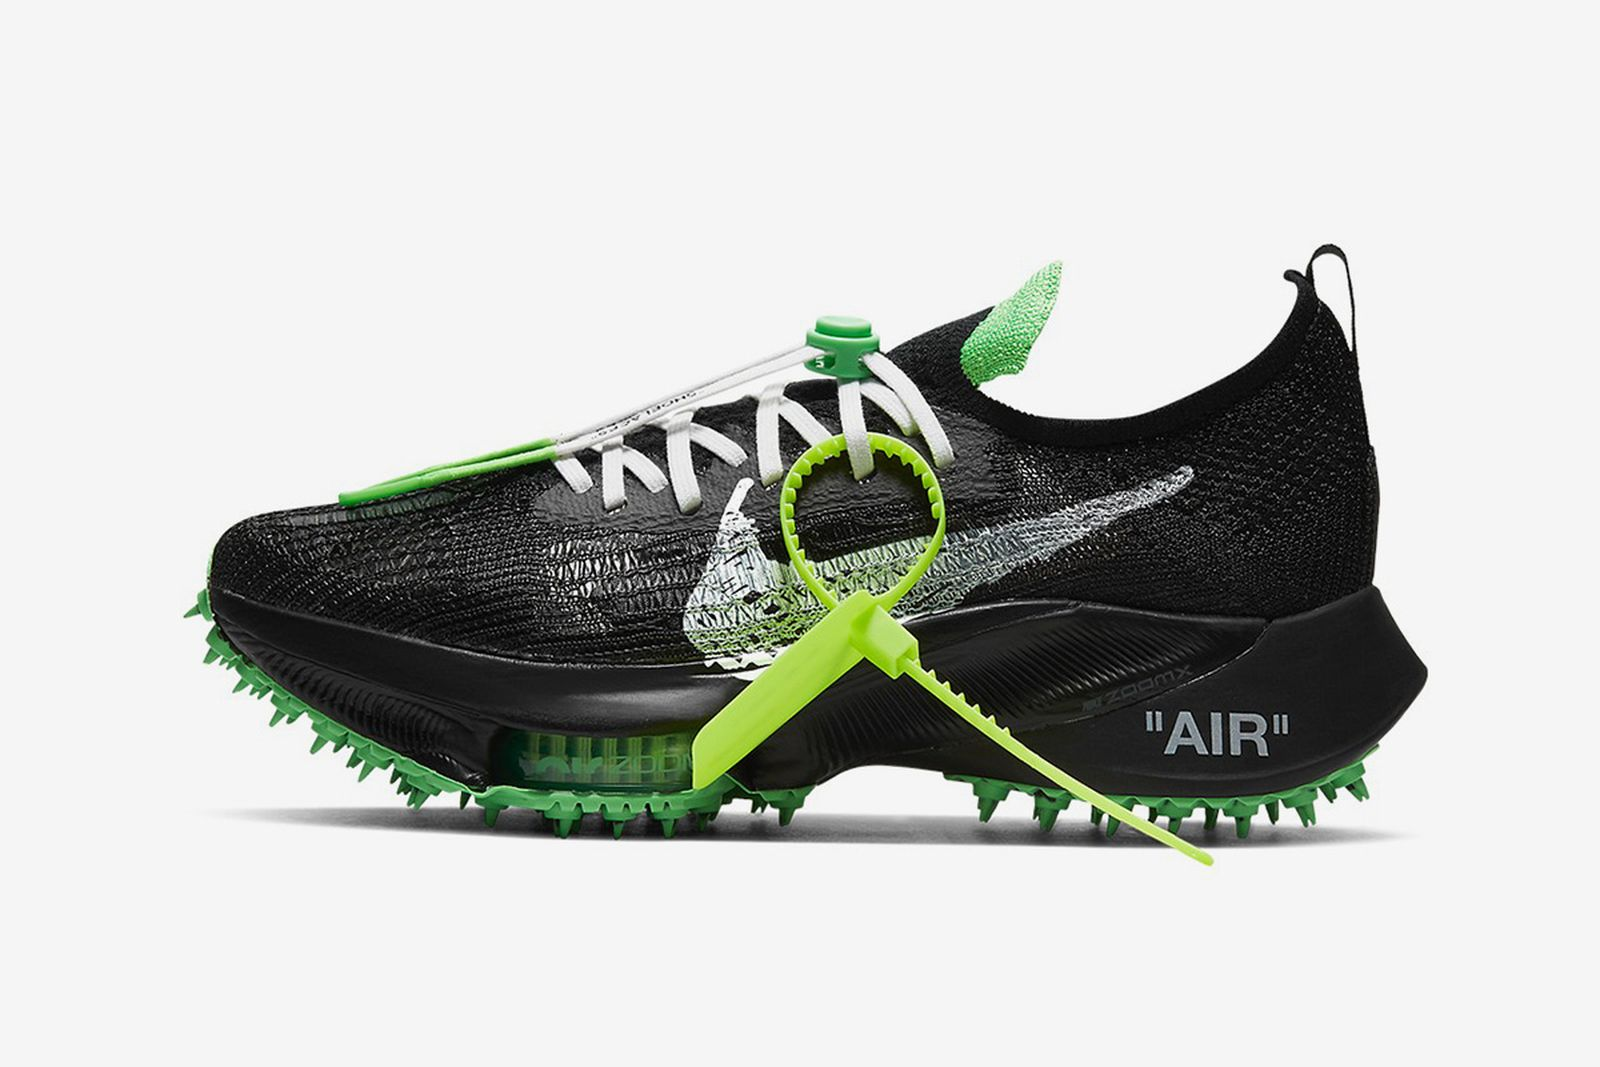 off-white-nike-air-zoom-tempo-next-release-date-price-01